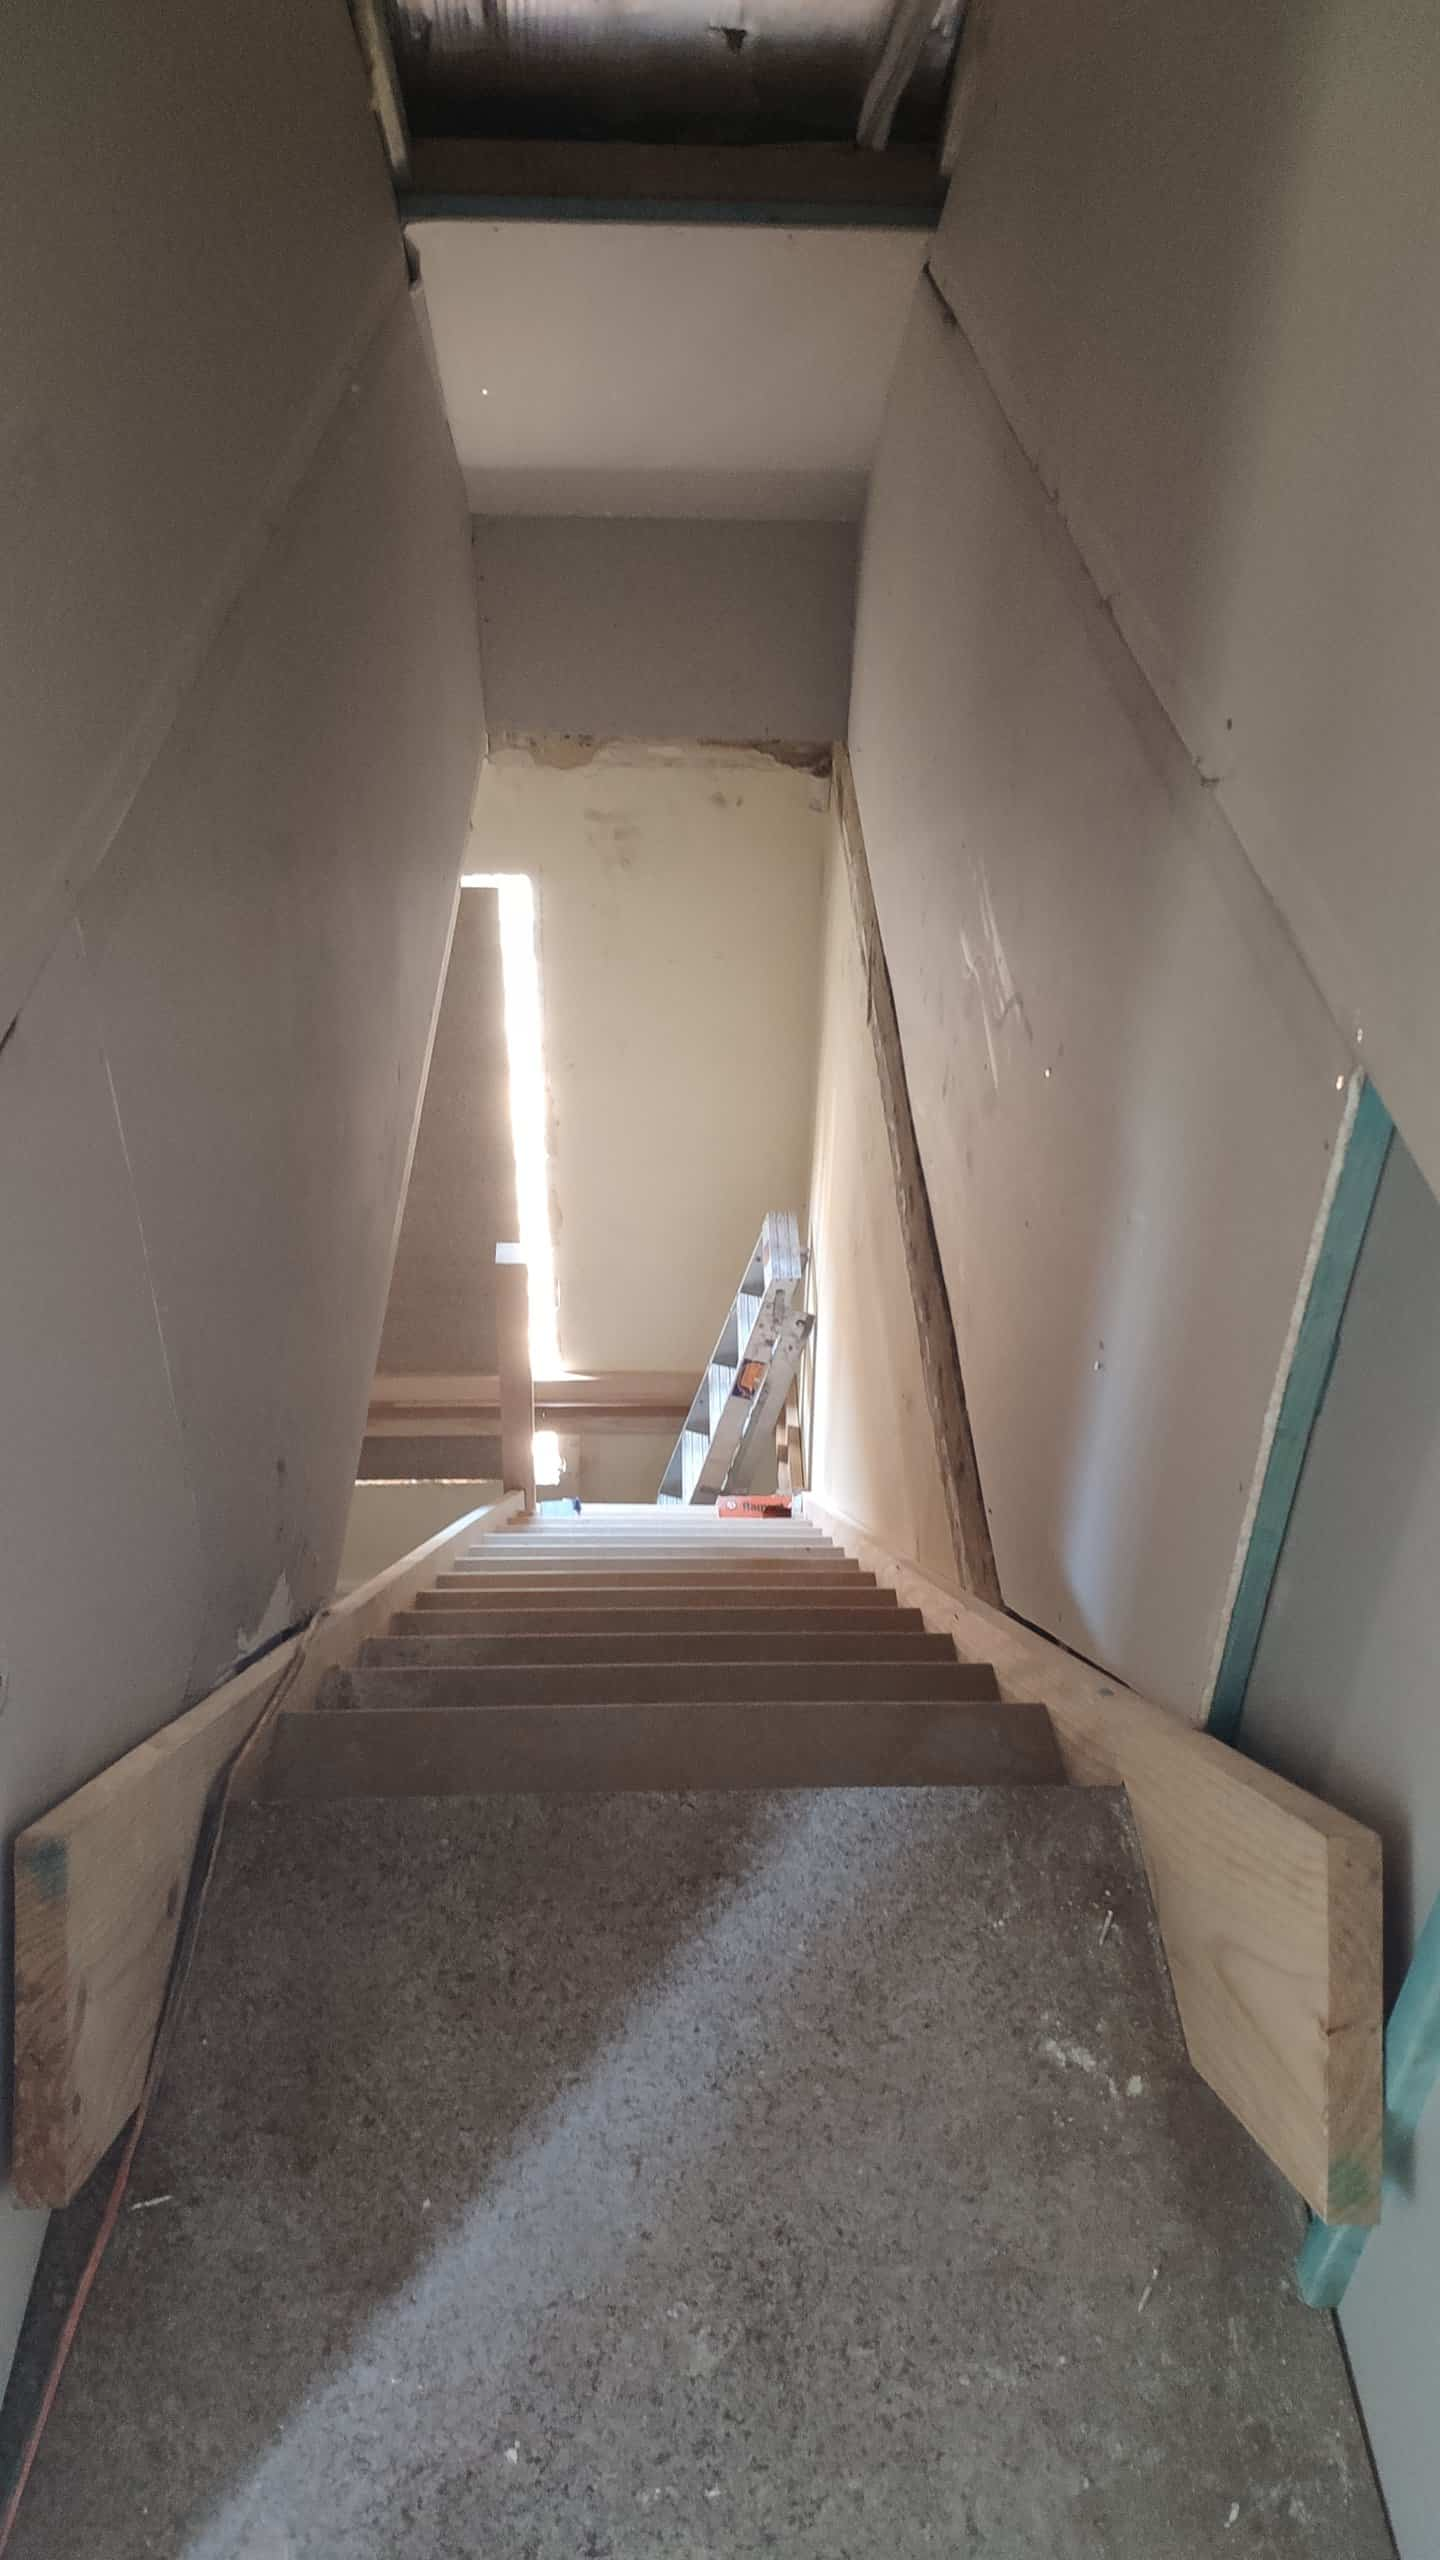 An above view of a partially installed wooden staircase